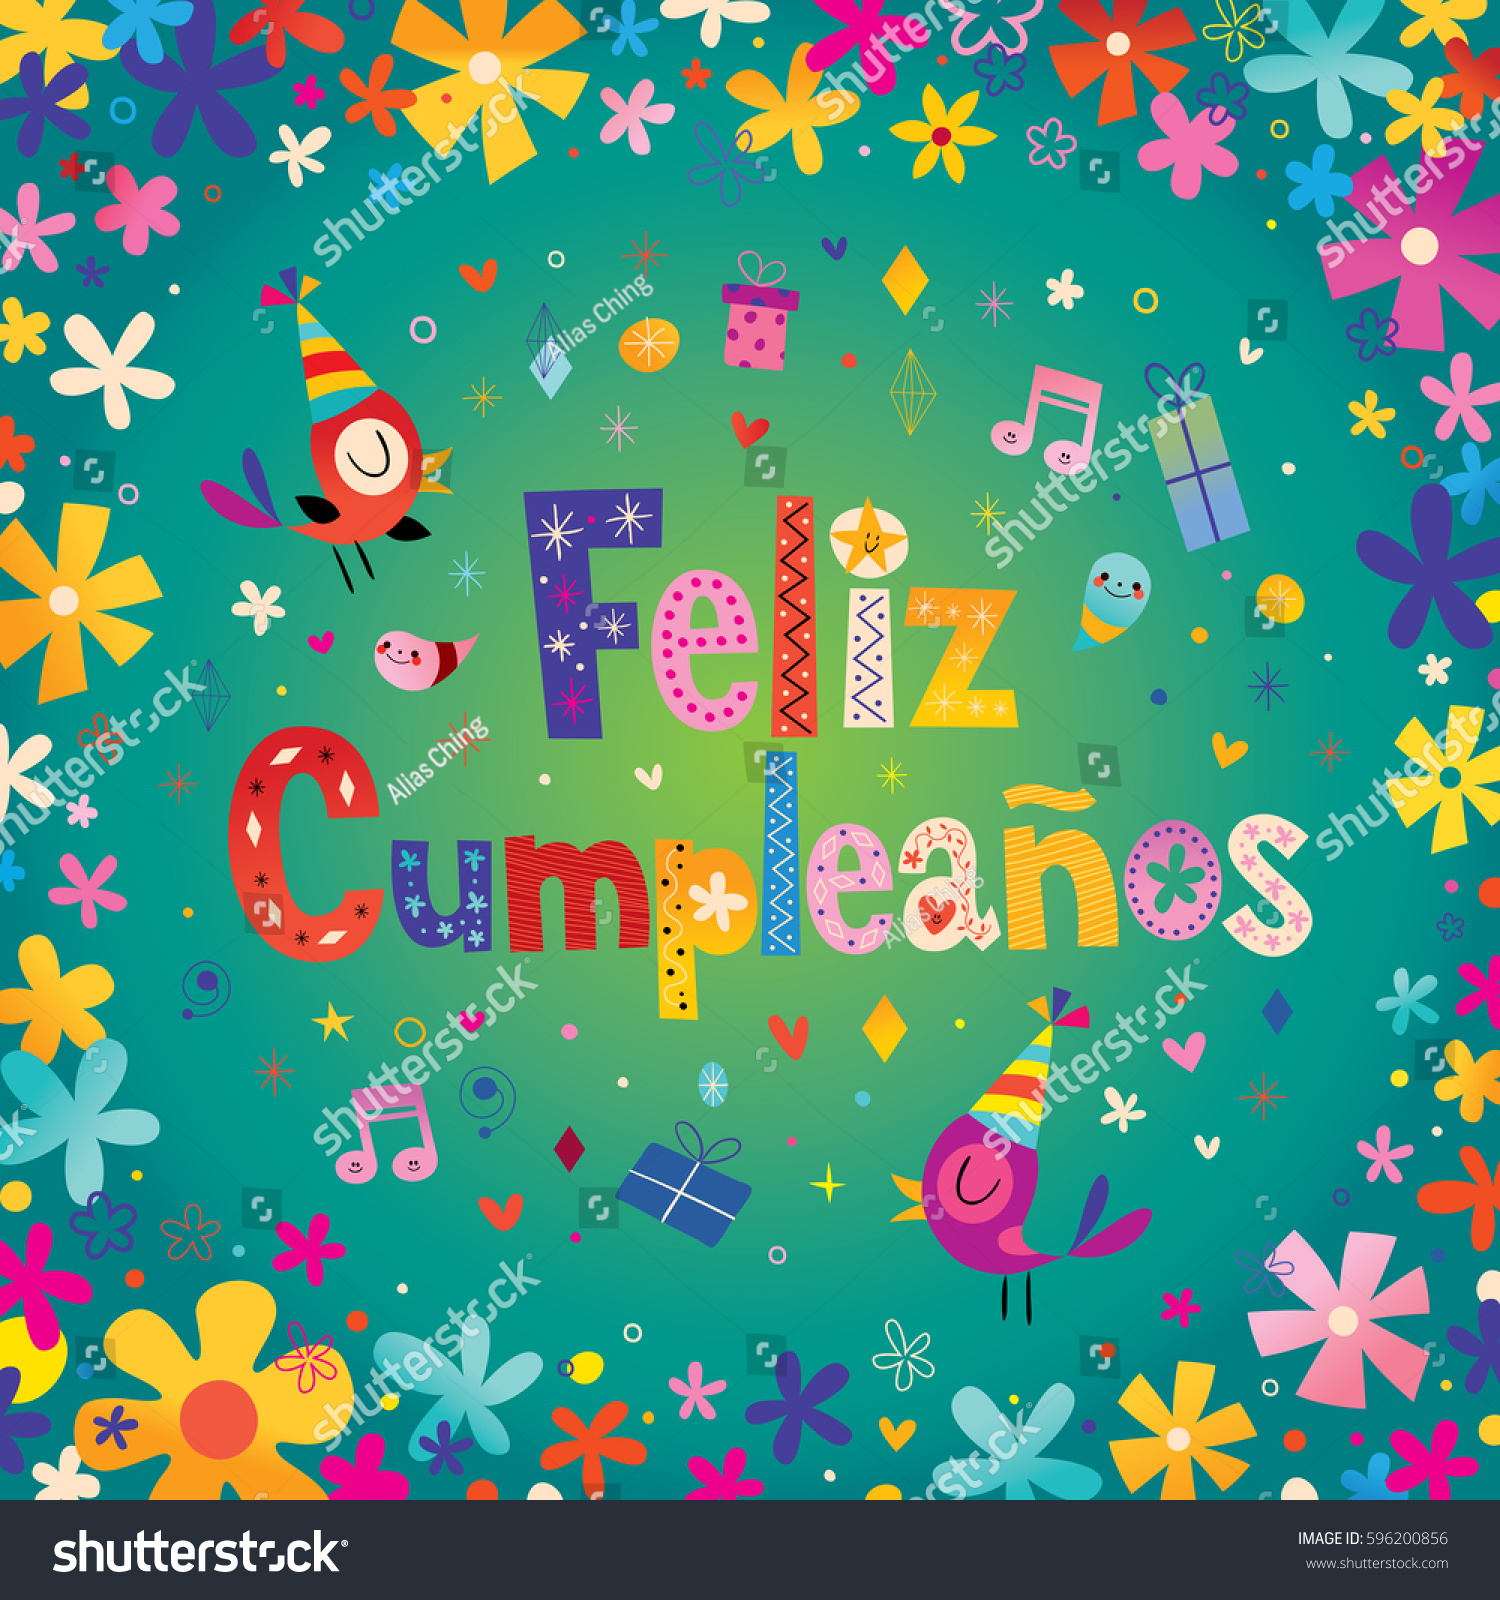 Feliz Cumpleanos Happy Birthday Spanish Greeting Stock Vector